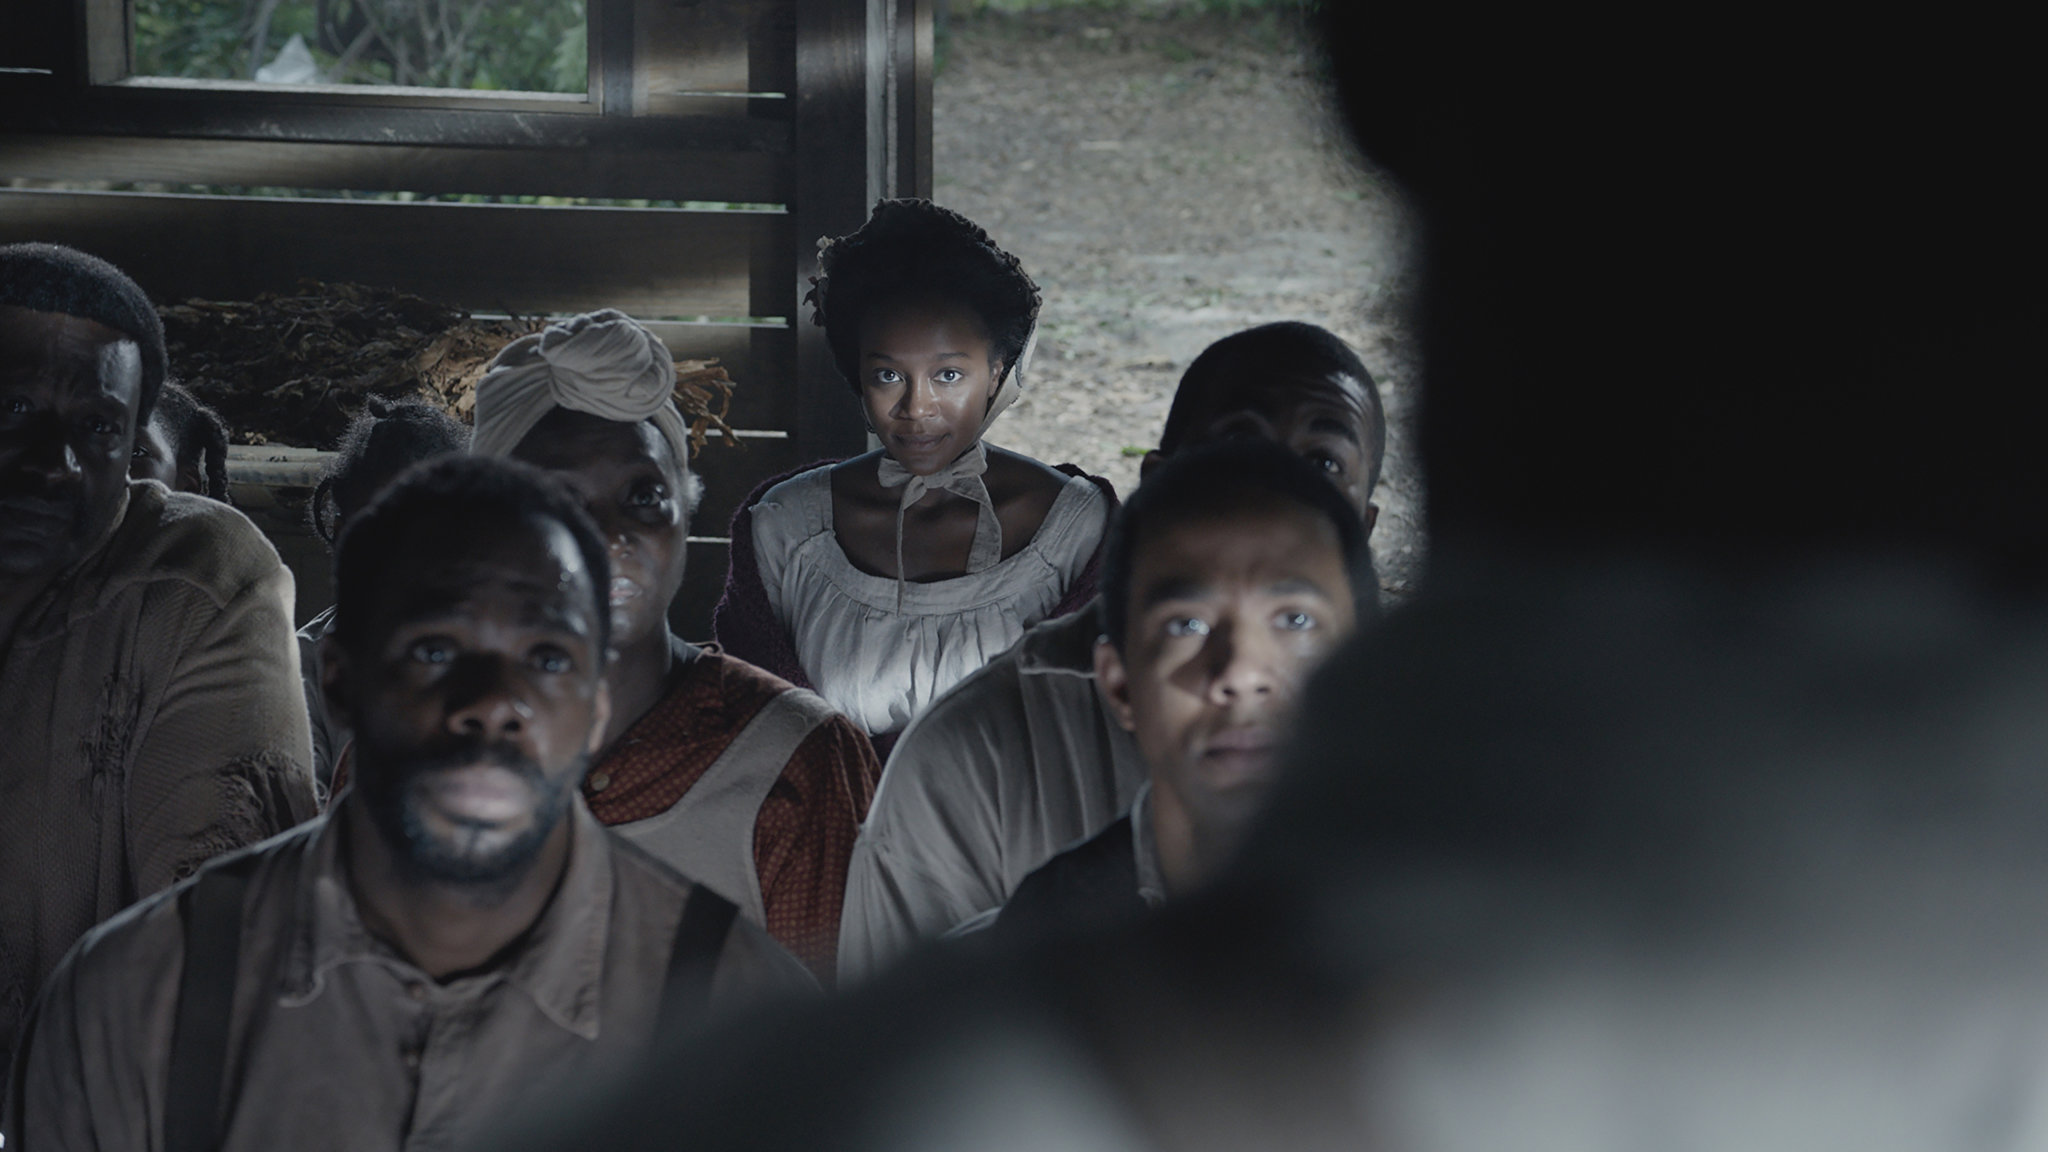 THE BIRTH OF A NATION Bande Annonce (2016)